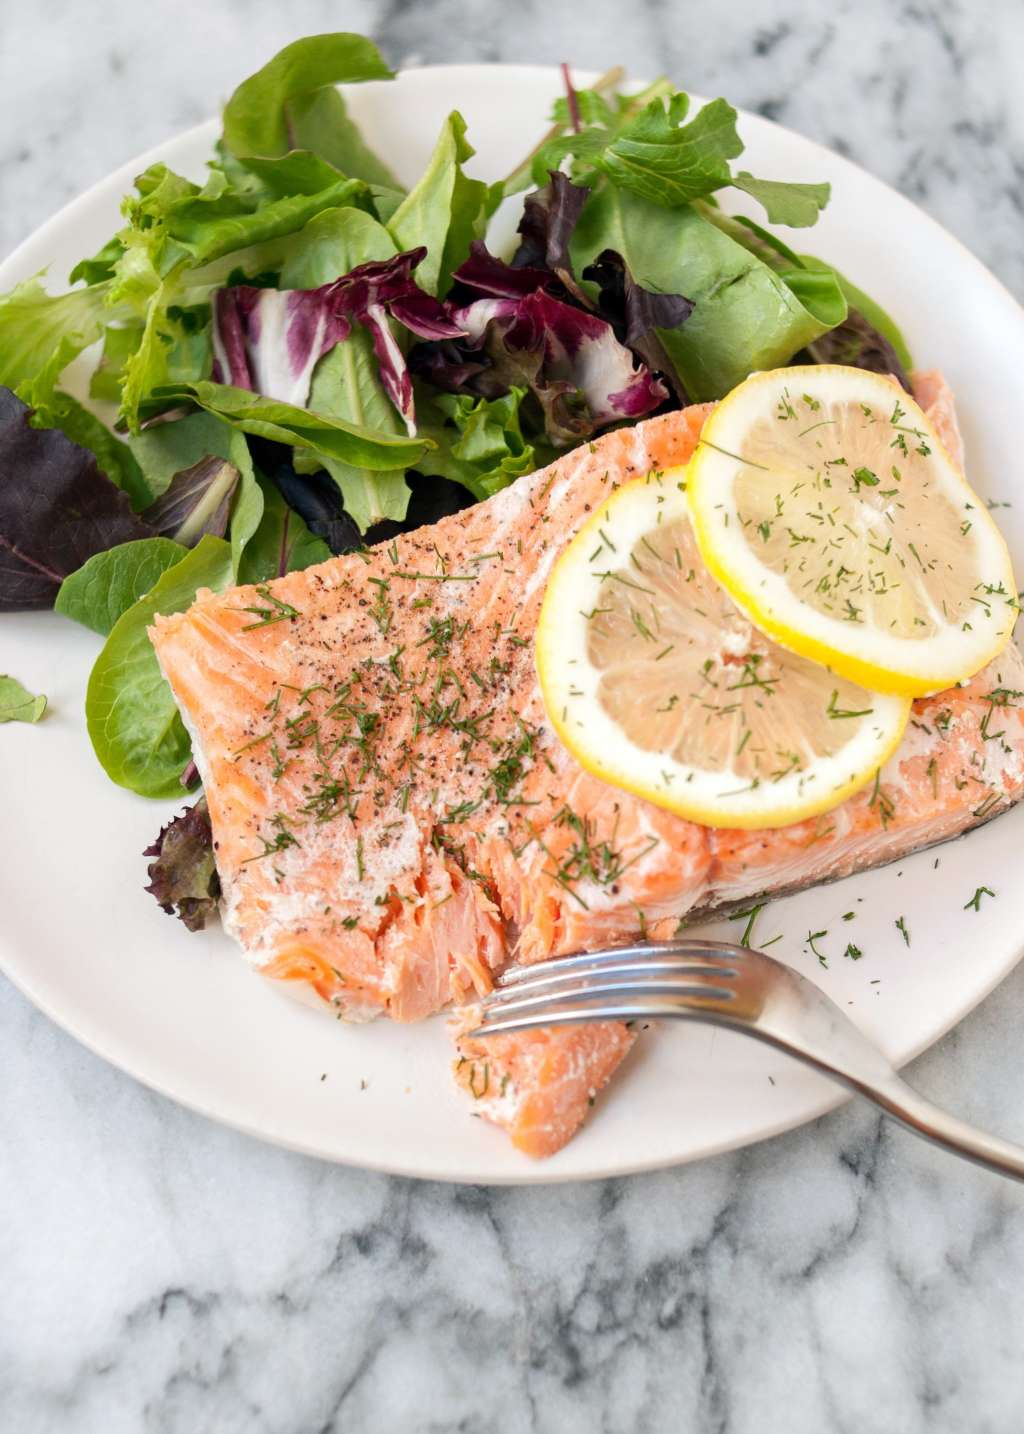 5 Essential Tips for Buying and Cooking Salmon Like a Pro